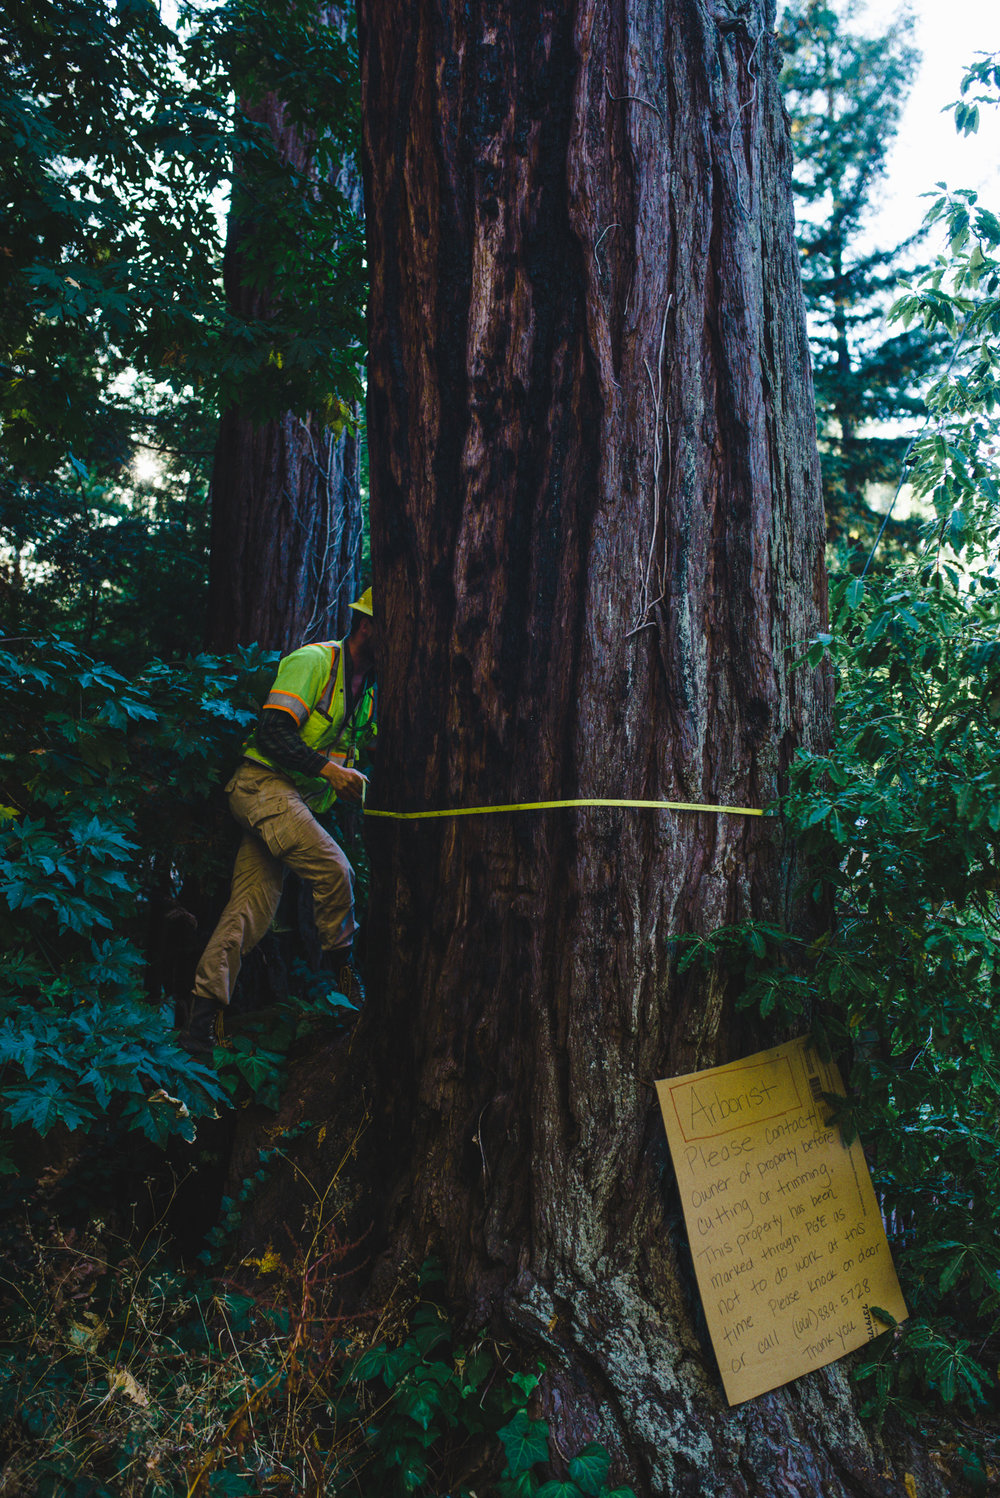 Arborist measures large coast redwood tree, at the request of property owner.  Determines this tree was mis-marked and should not be taken down.